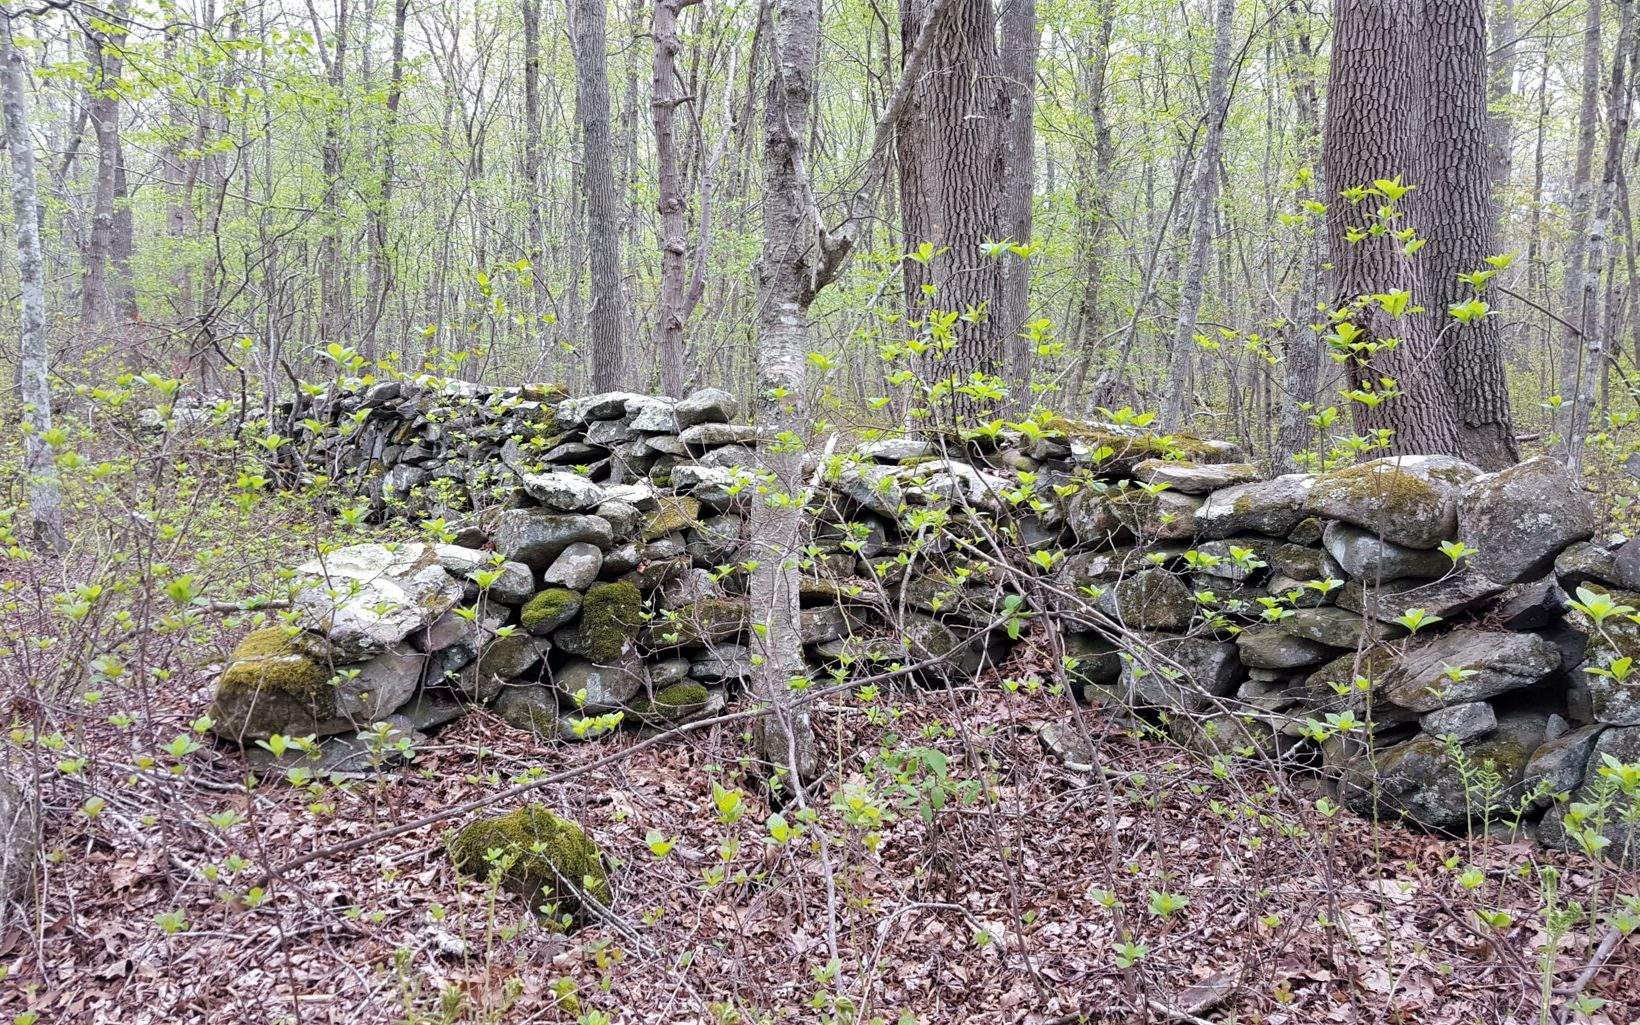 A low wall made of stacked, gray stones runs through the woods, as shrubs and trees leaf out in early spring.